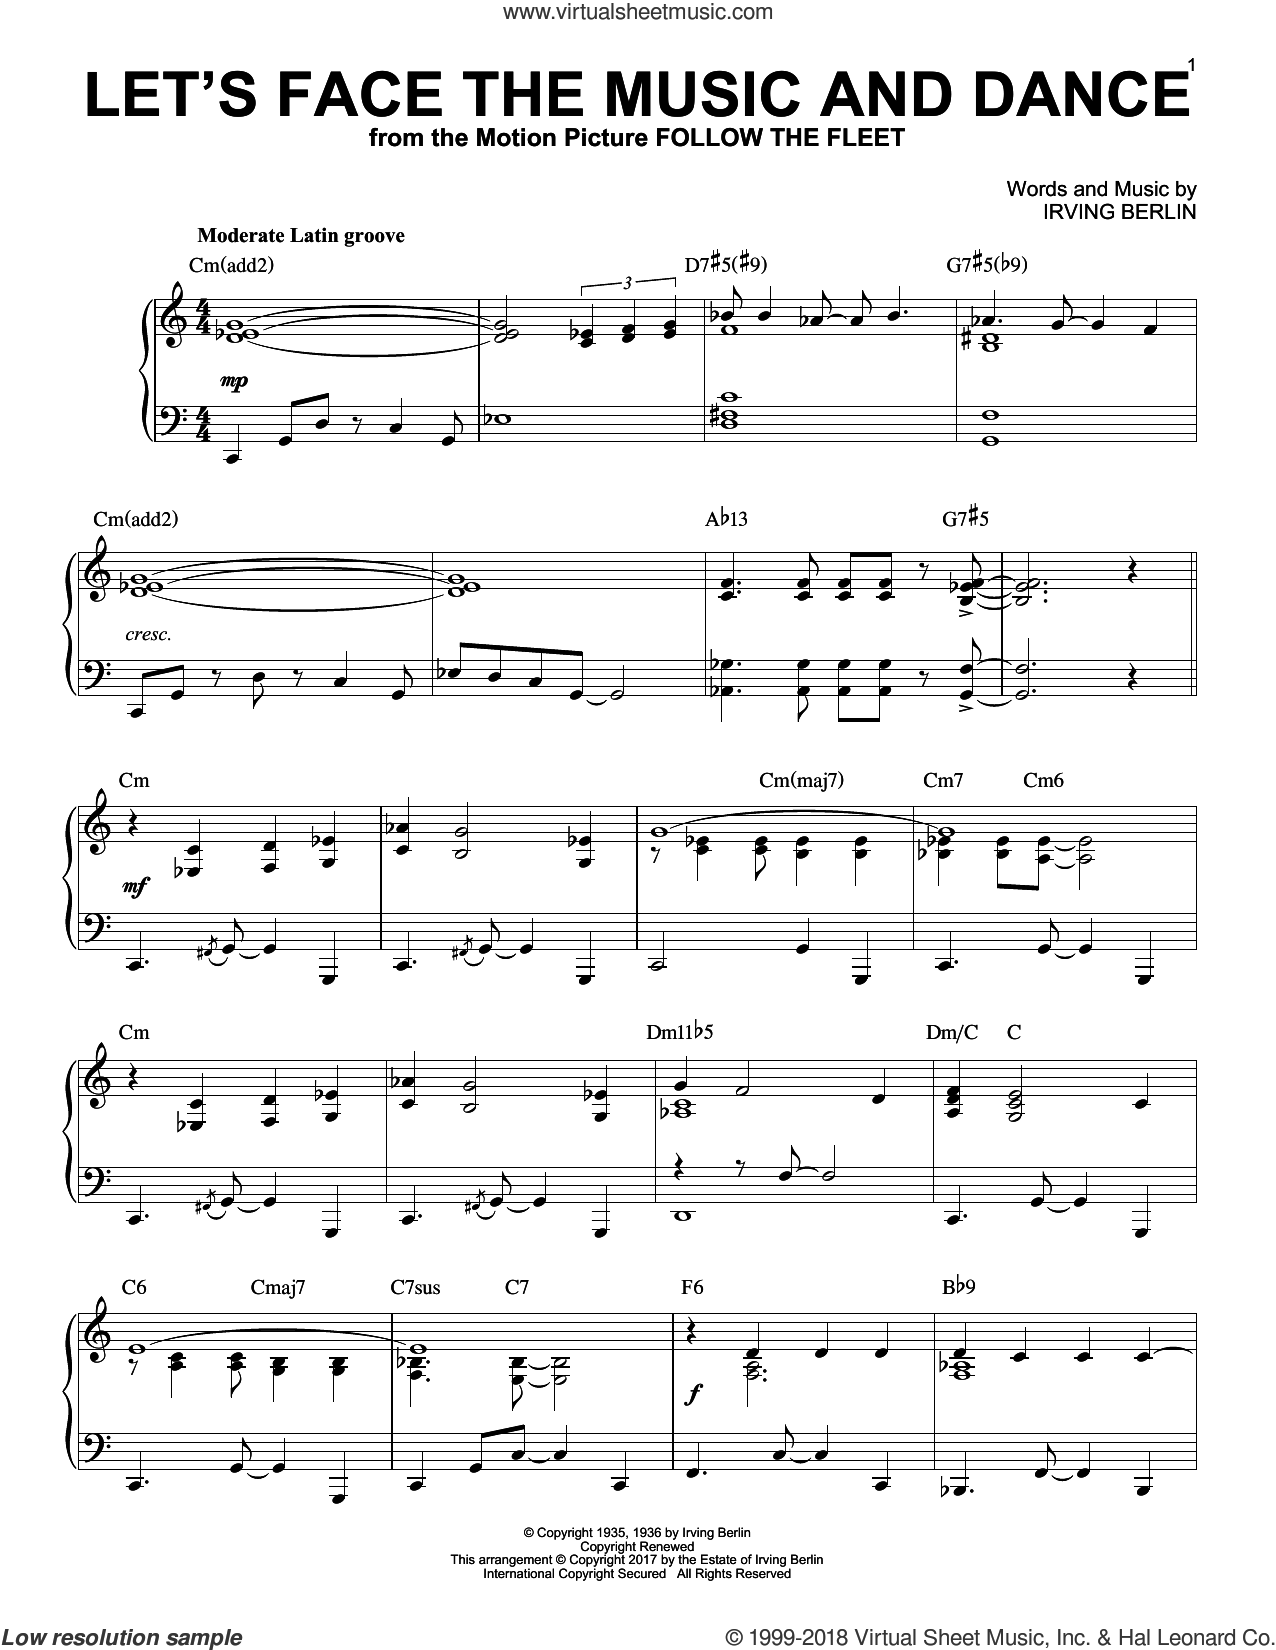 Let's Face The Music And Dance [Jazz version] sheet music for piano solo by Irving Berlin and Dick Hyman, intermediate skill level